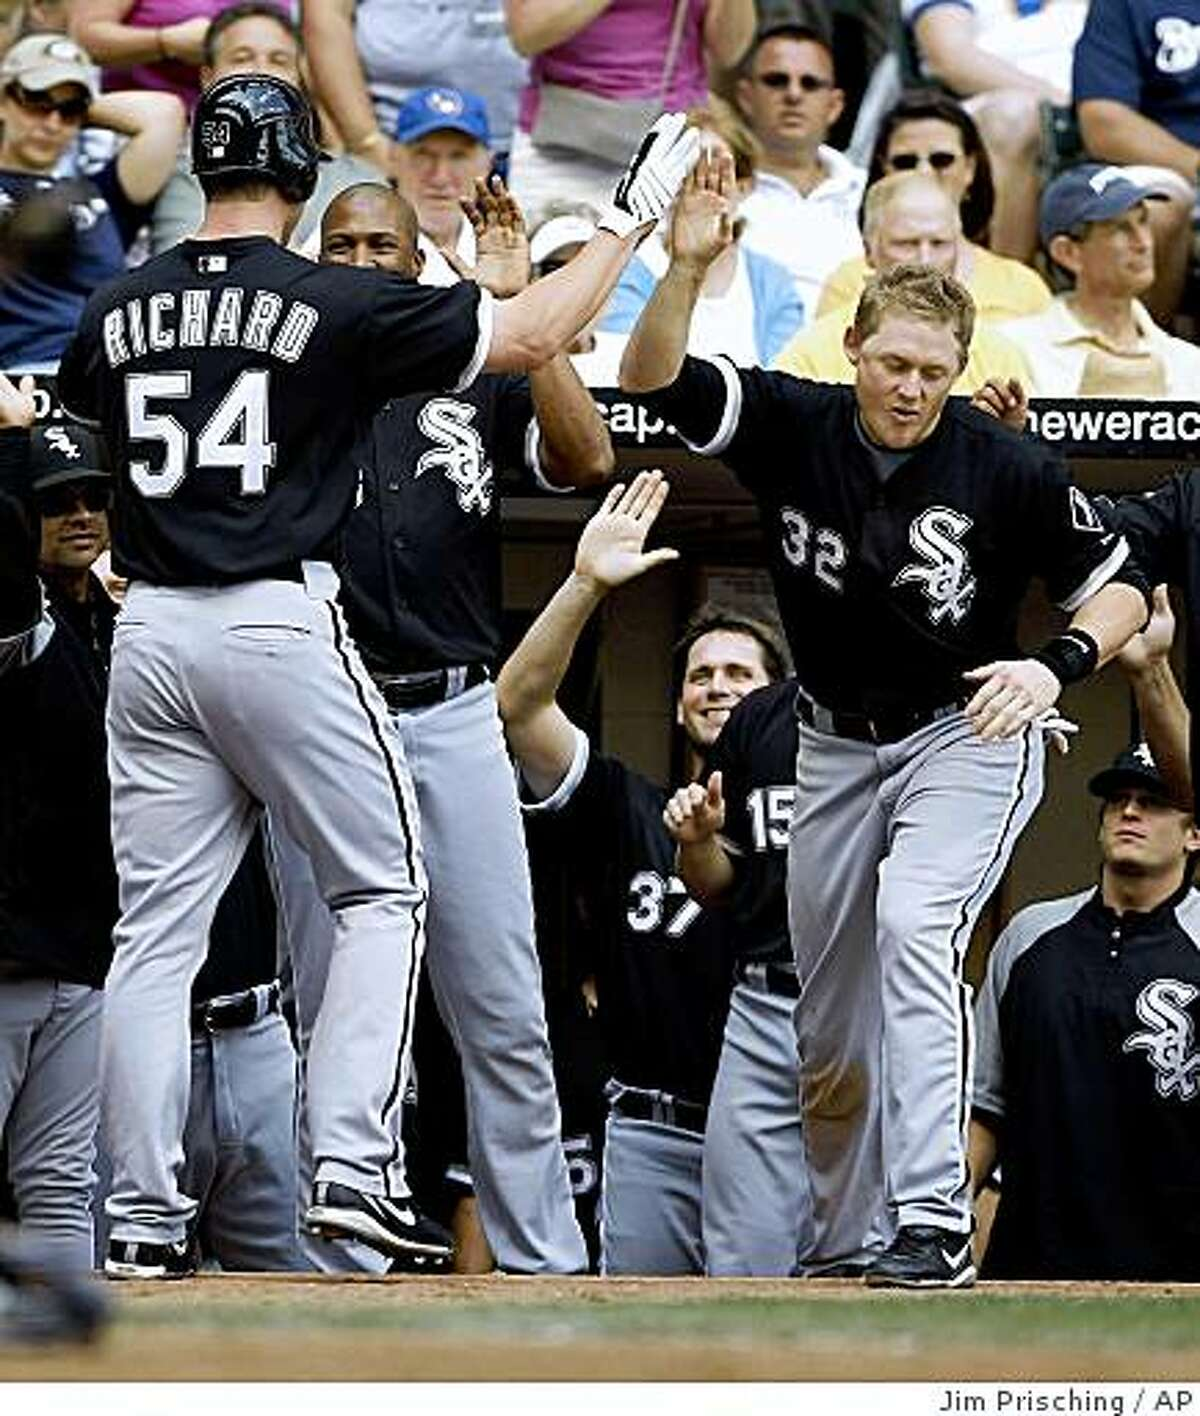 Chicago White Sox's Clayton Richard (54) is congratulated by teammates after scoring the game winning run on a single by teammate A.J. Pierzynski during the ninth inning of a baseball game Sunday, June 14, 2009, in Milwaukee. The White Sox defeated the Brewers 5-4. (AP Photo/Jim Prisching)